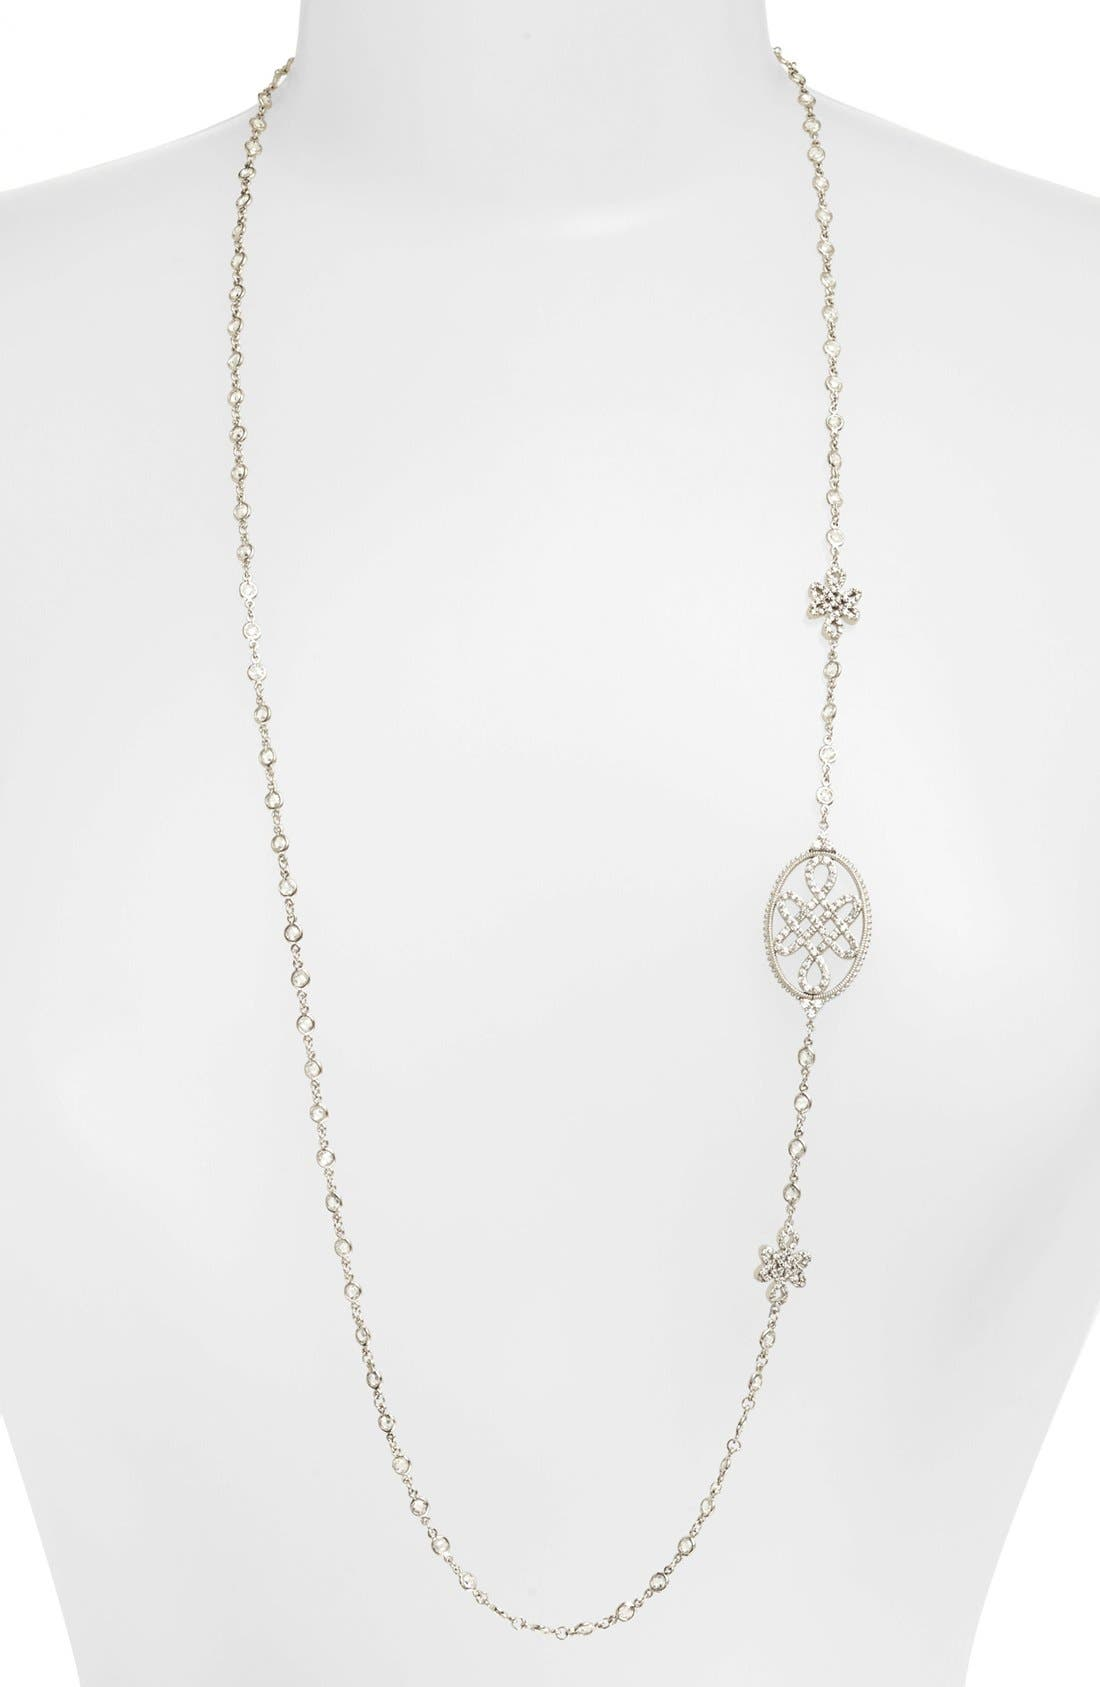 Main Image - FREIDA ROTHMAN Long Love Knot Station Necklace